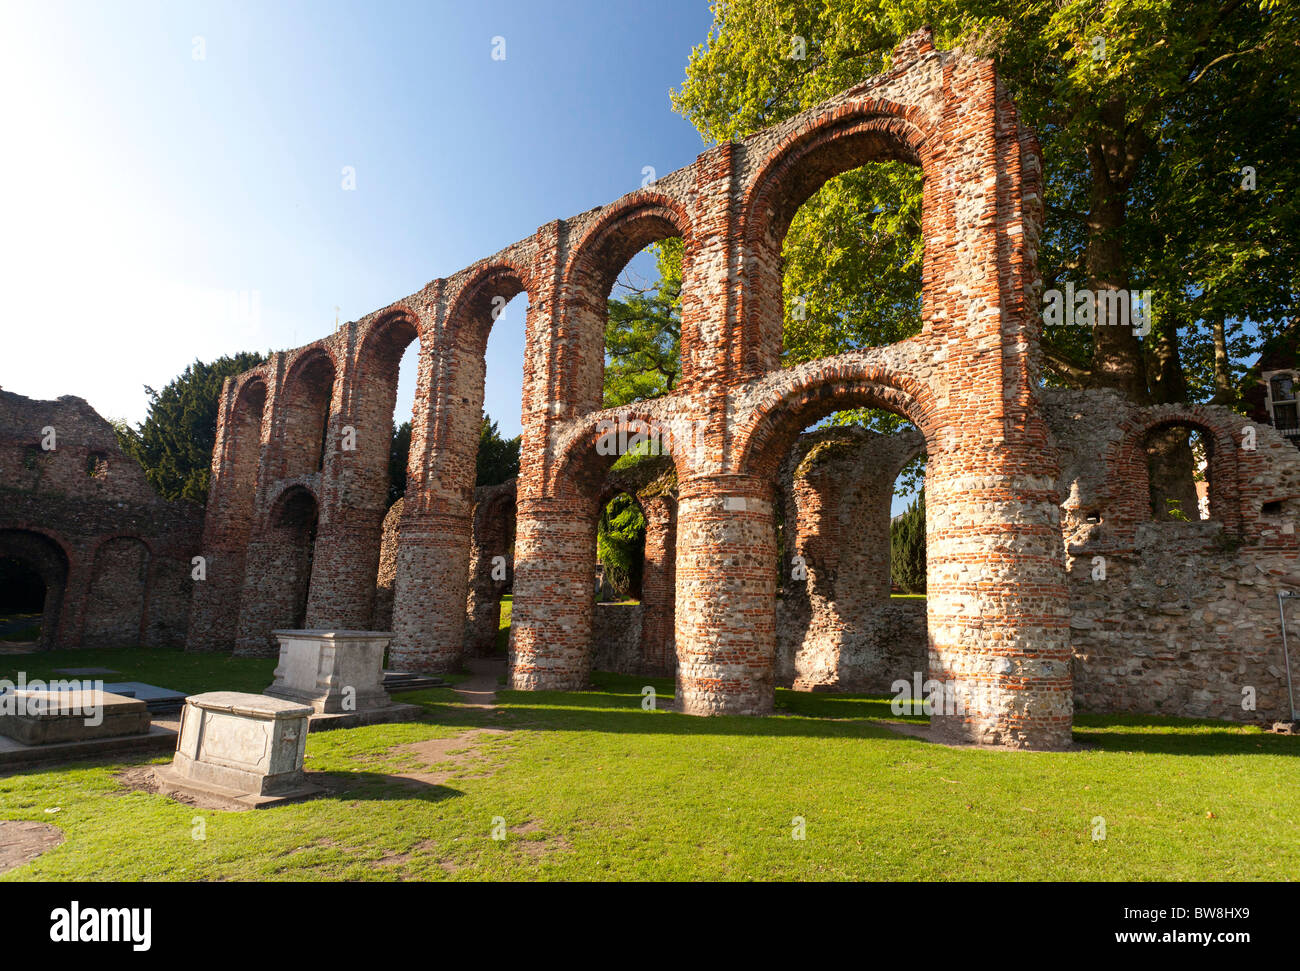 remains of St. Botolph's Priory in Colchester, Essex, UK - Stock Image